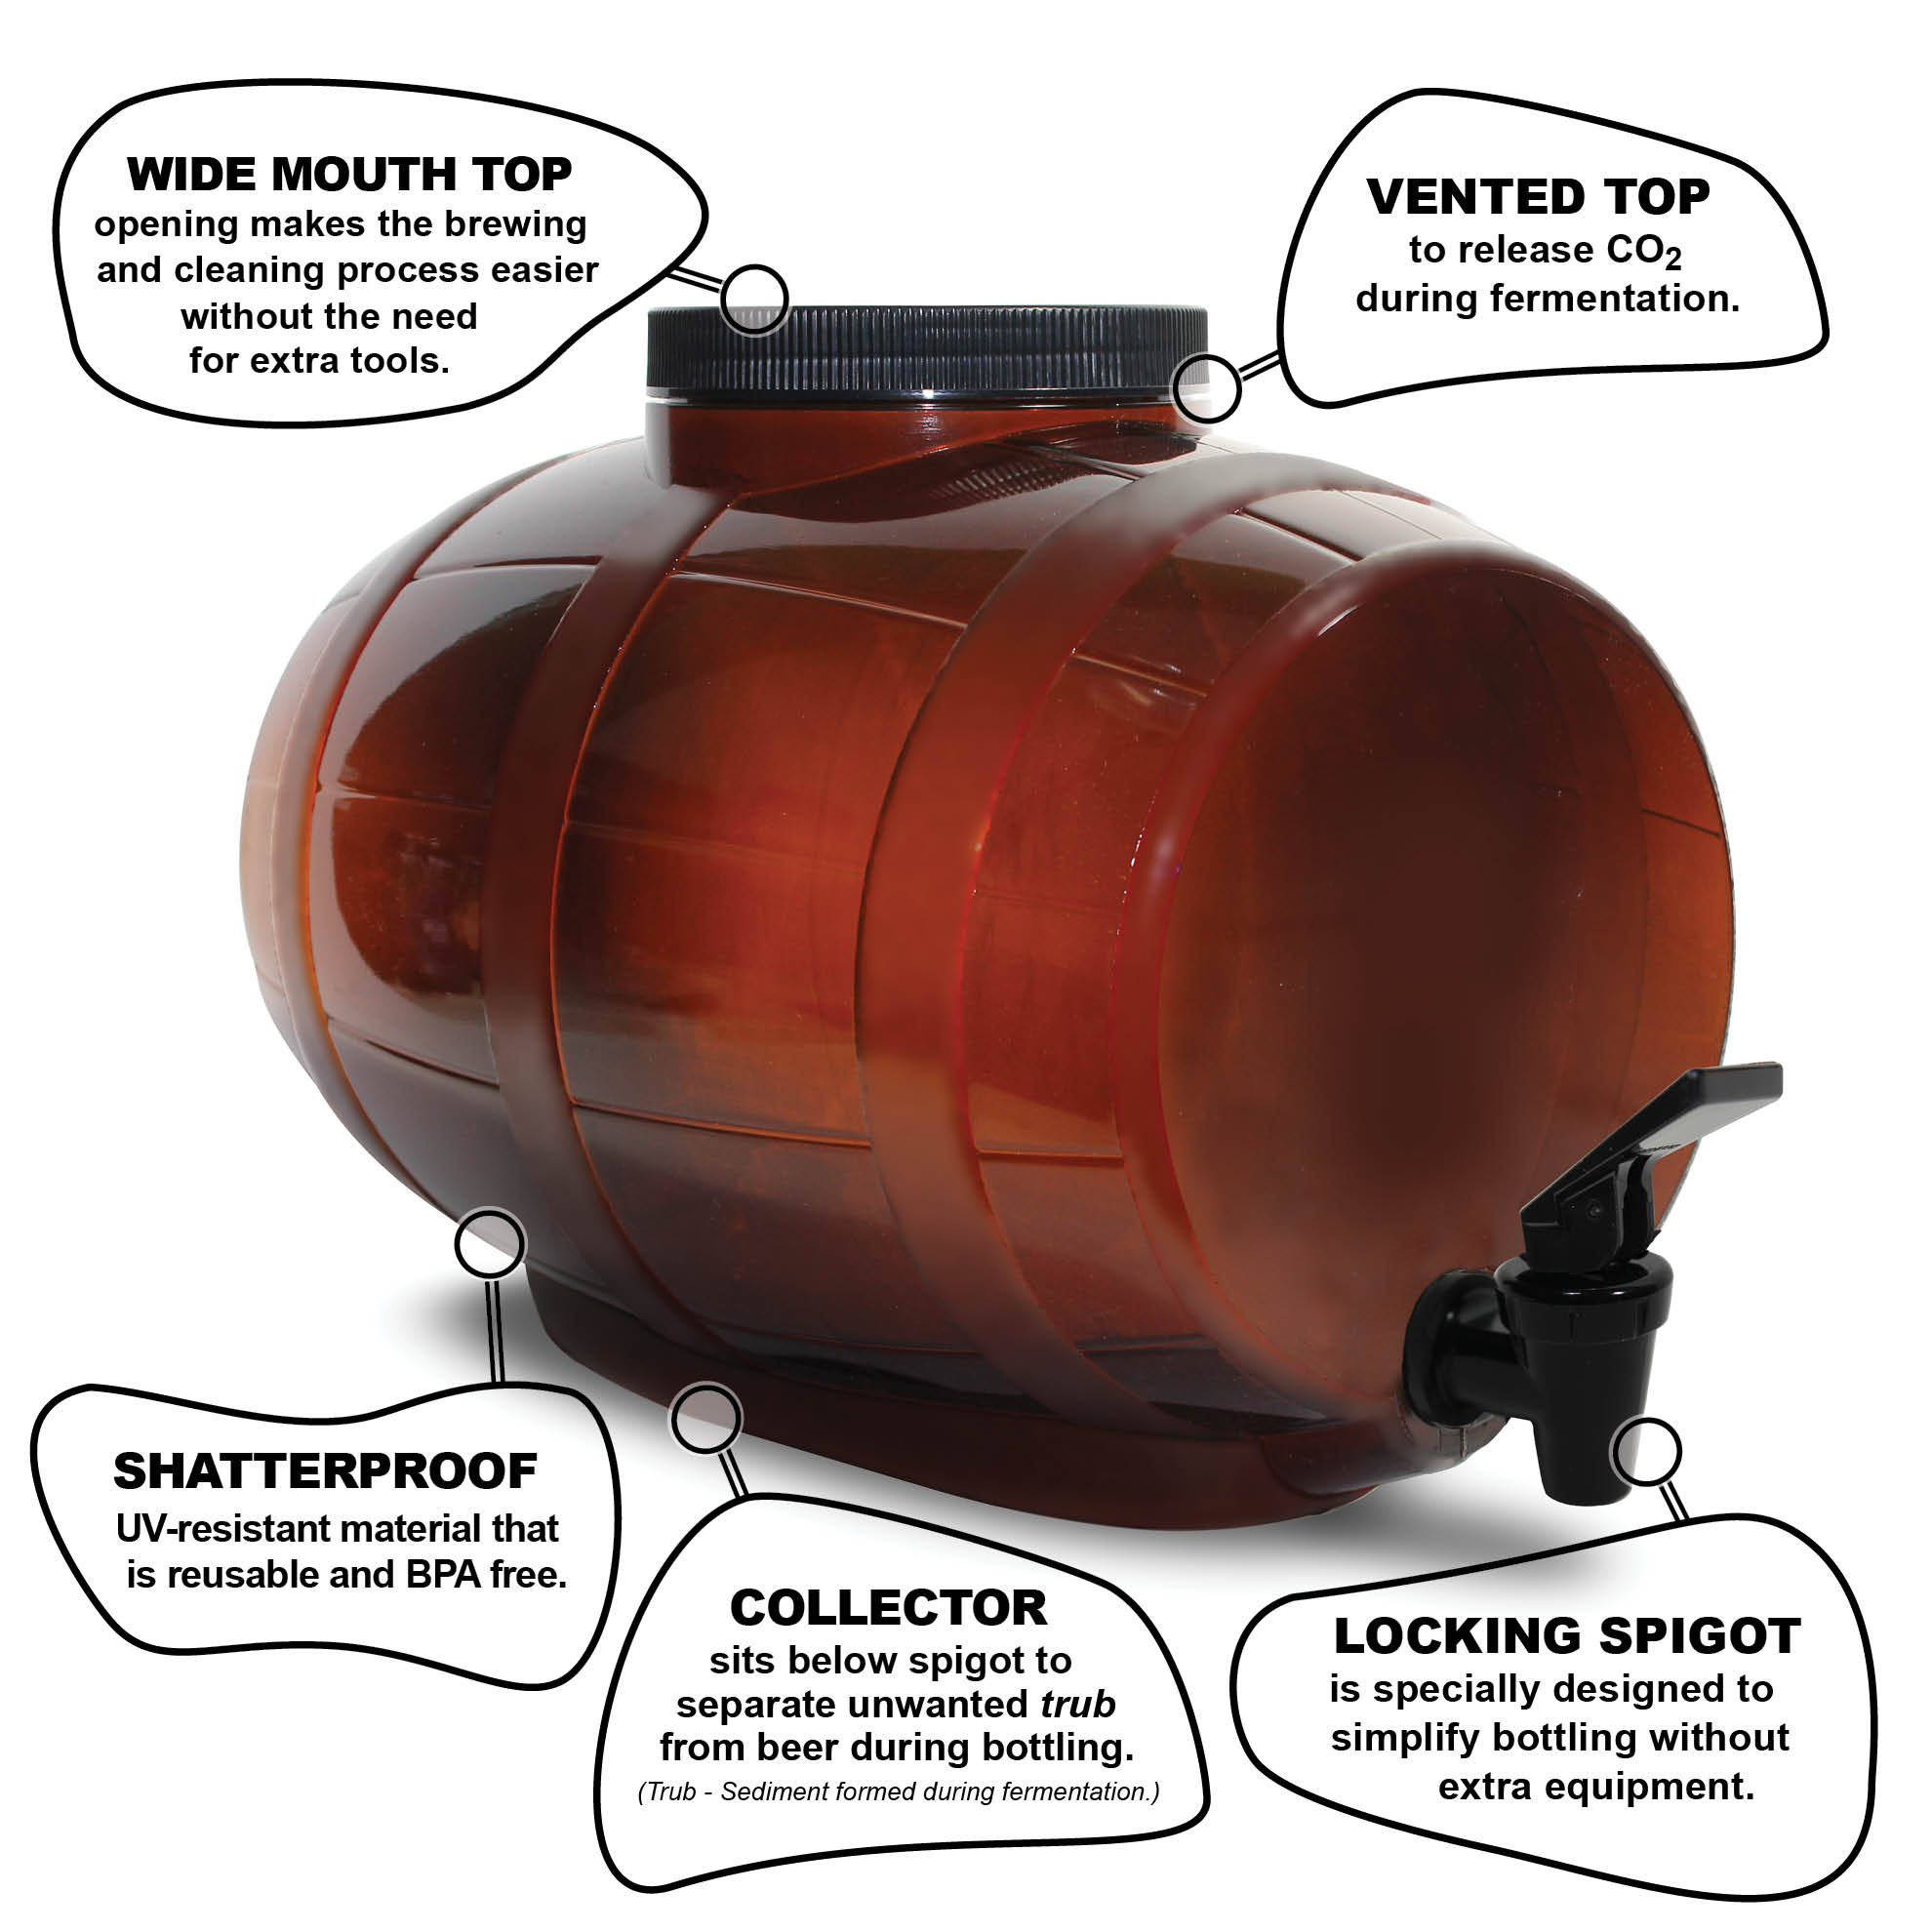 Mr Beer Bewitched Amber Ale Craft Beer Making Kit With Convenient 2 Gallon Fermenter Designed For Simple And Efficient Homebrewing Walmart Com Walmart Com